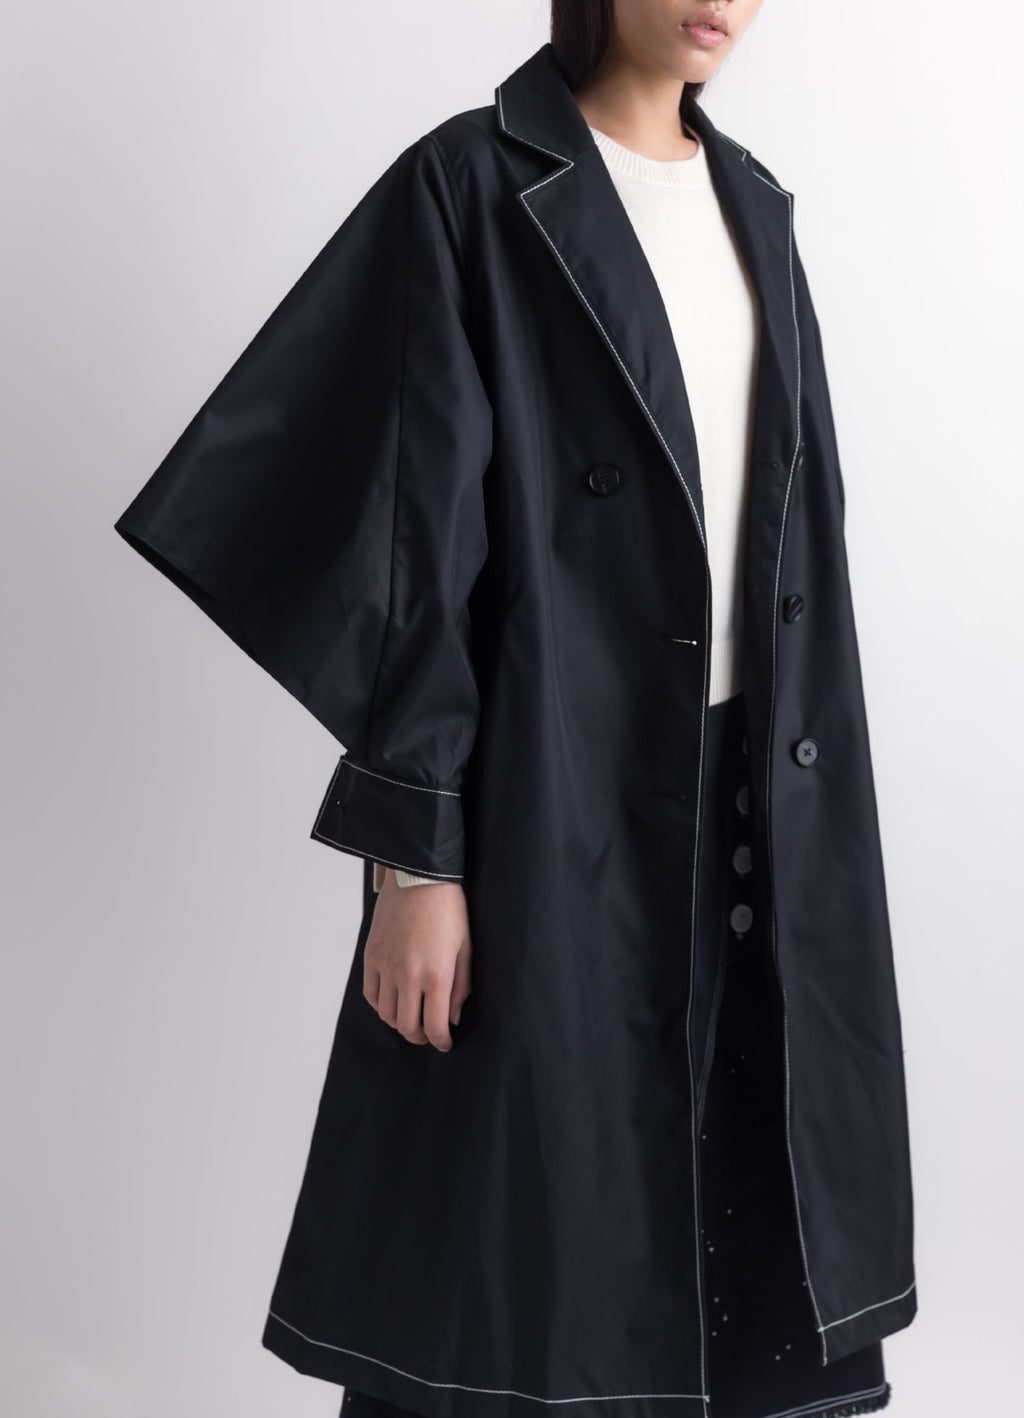 Dual-sleeves trench coat